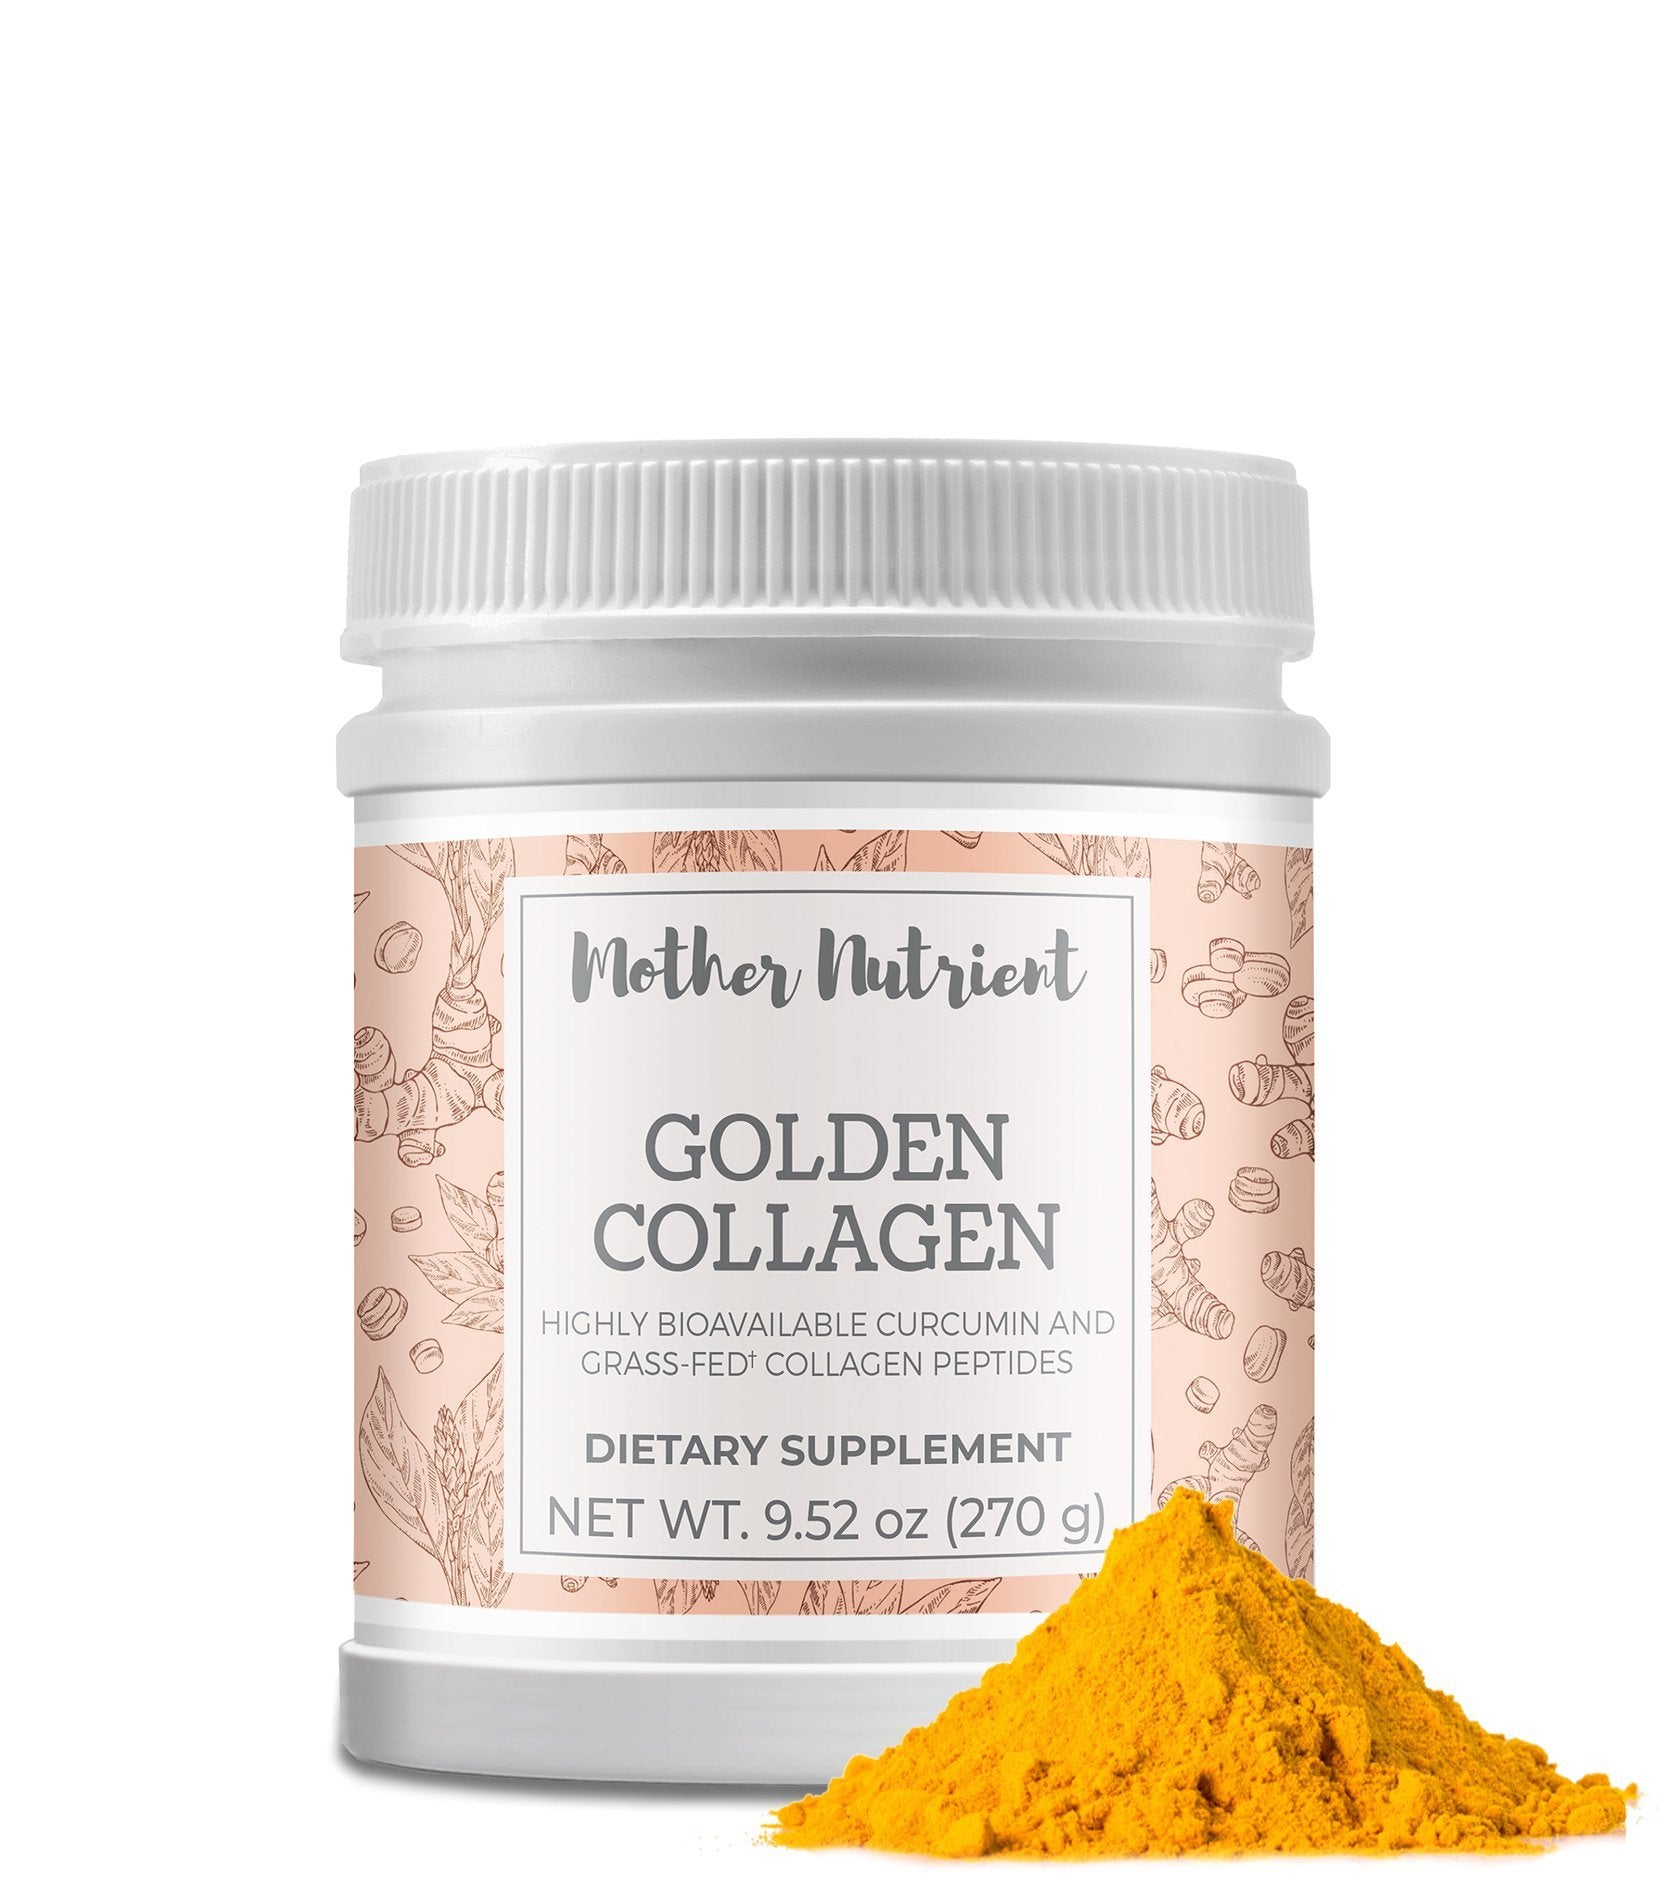 Organic Golden Collagen - Mother Nutrient